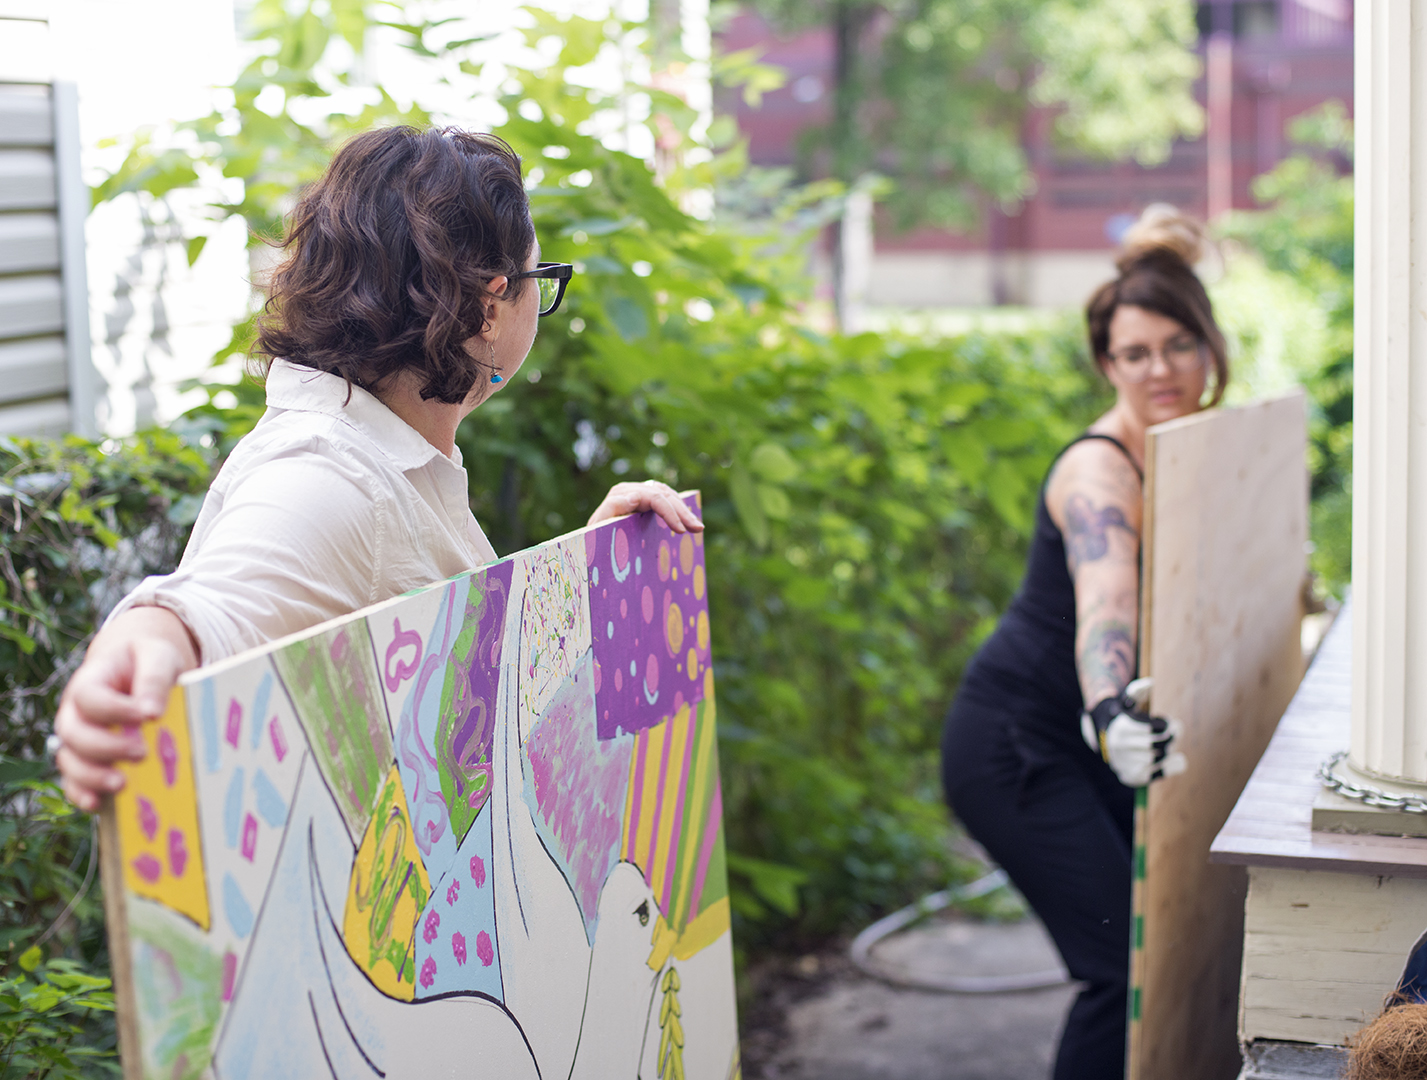 Amanda Crawford and Courtney Davis transport a painted mural to FFOYA house on Tuesday, 2017. The mural will be displayed in the FFOYA house gallery, before being installed in the Barren River Area Safe Space garden.LYDIA SCHWEICKART/HERALD